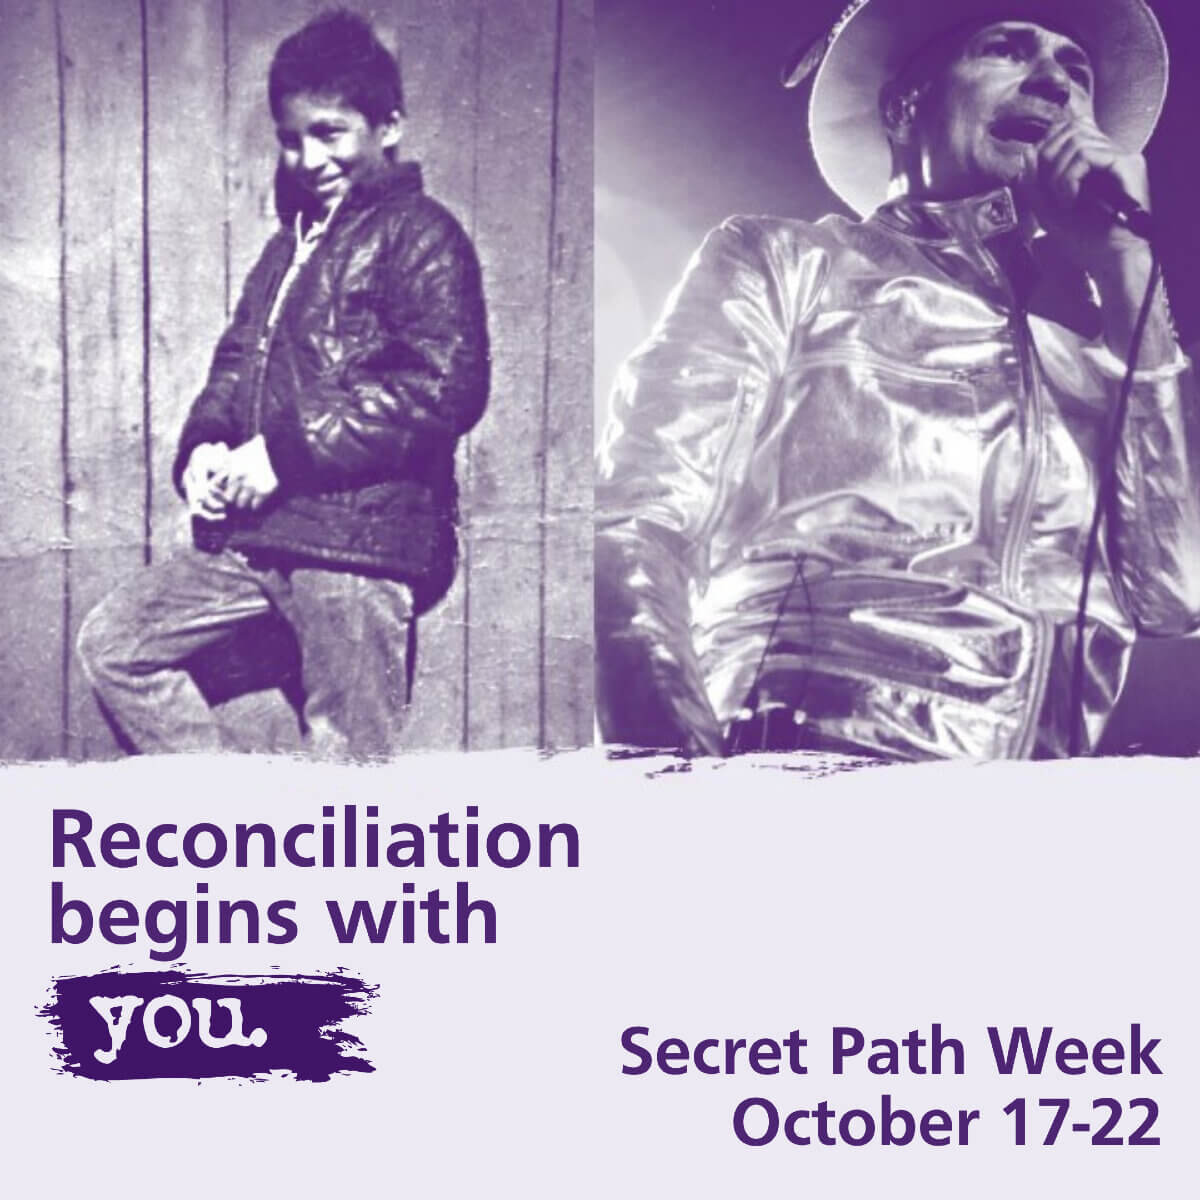 Reconciliation begins with you, Gord Downie and the Chanie Wenjack Fund